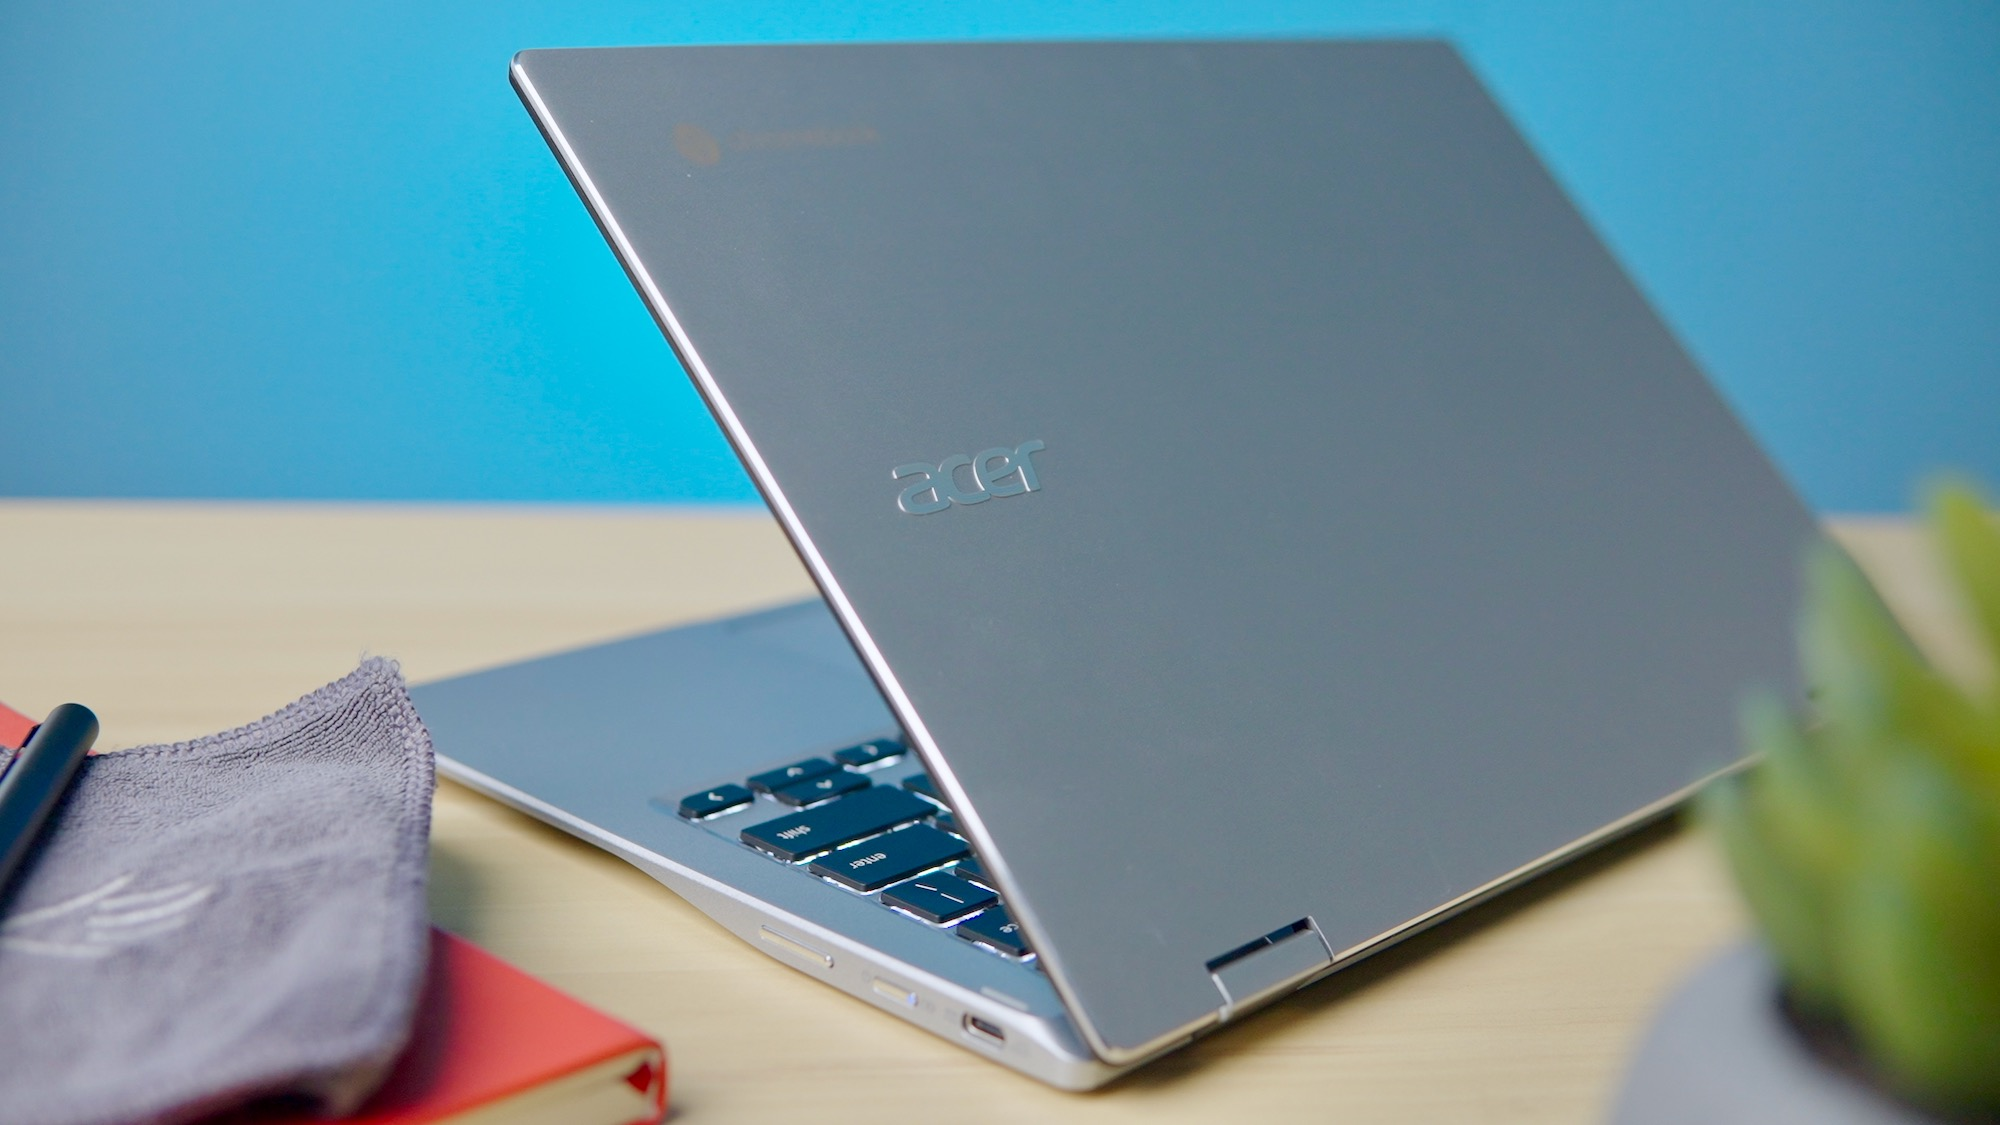 Acer Chromebook Spin 513 Review: The Snapdragon arrival [VIDEO]